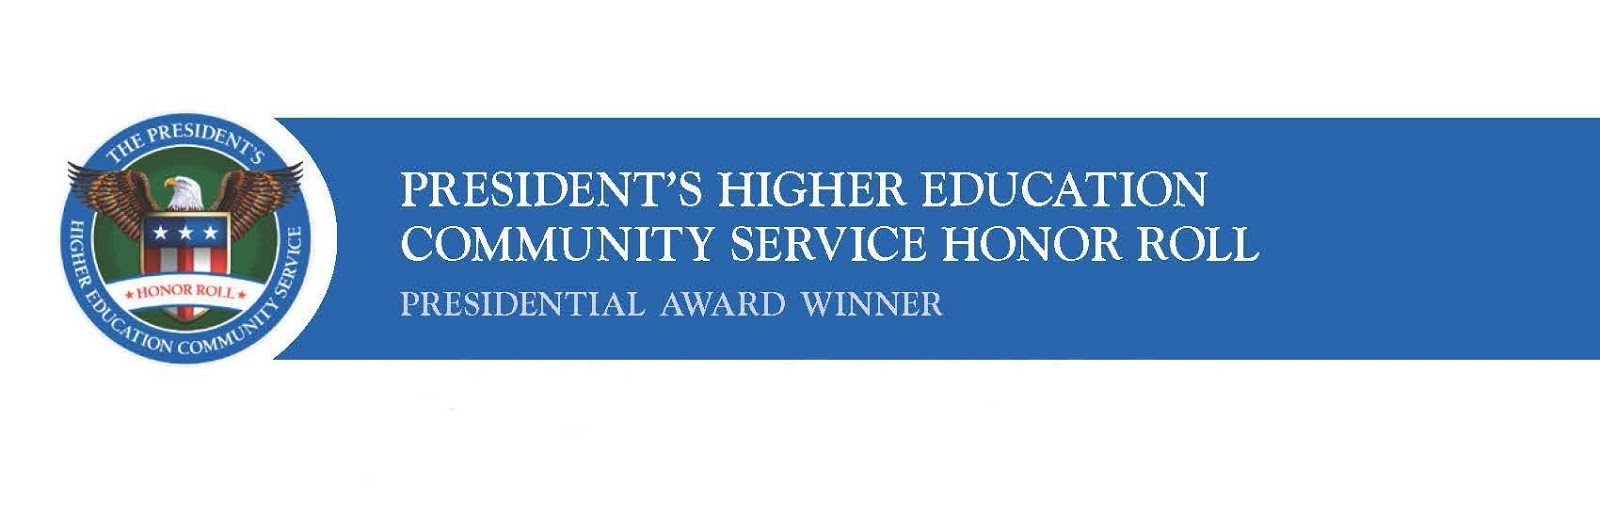 President's Higher Education Community Service Honor Roll - Presidential Award Winner